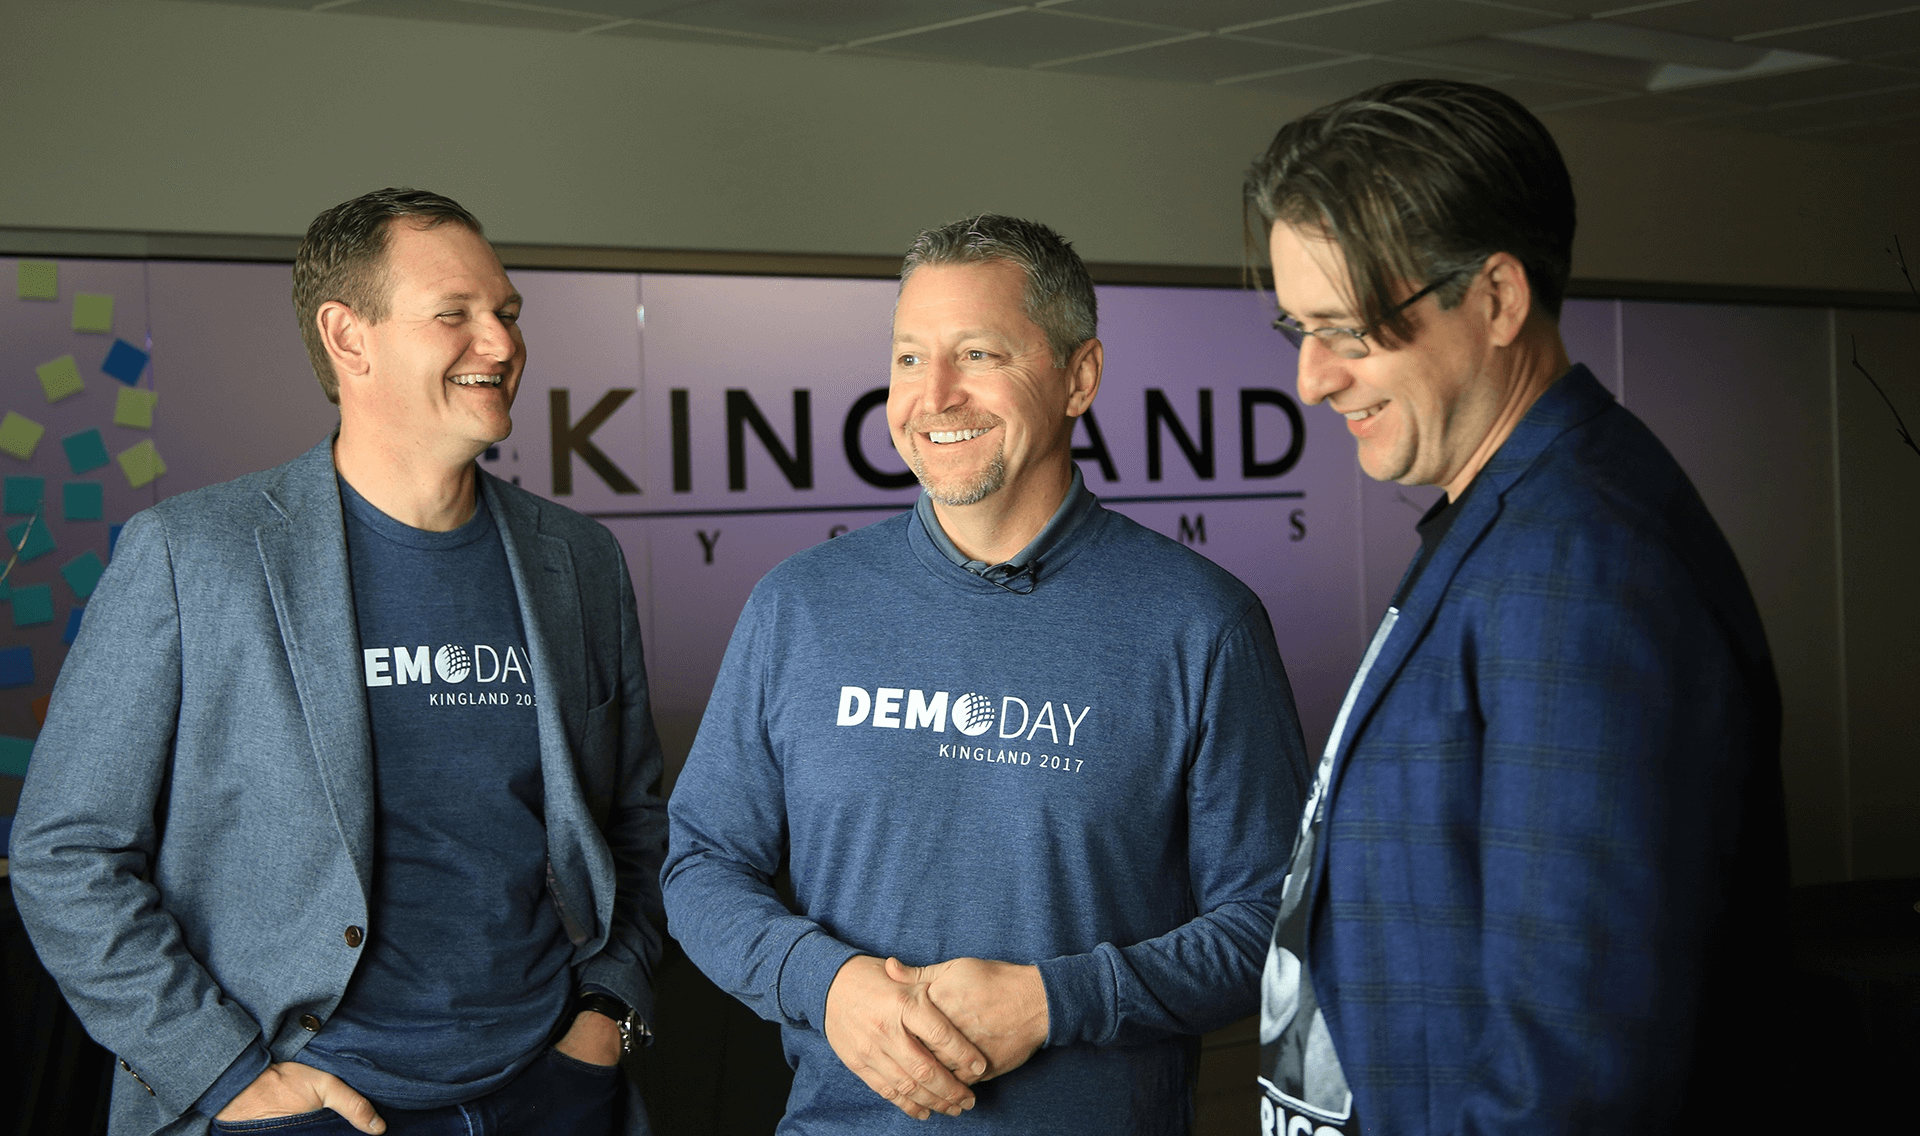 Kingland Demo Day